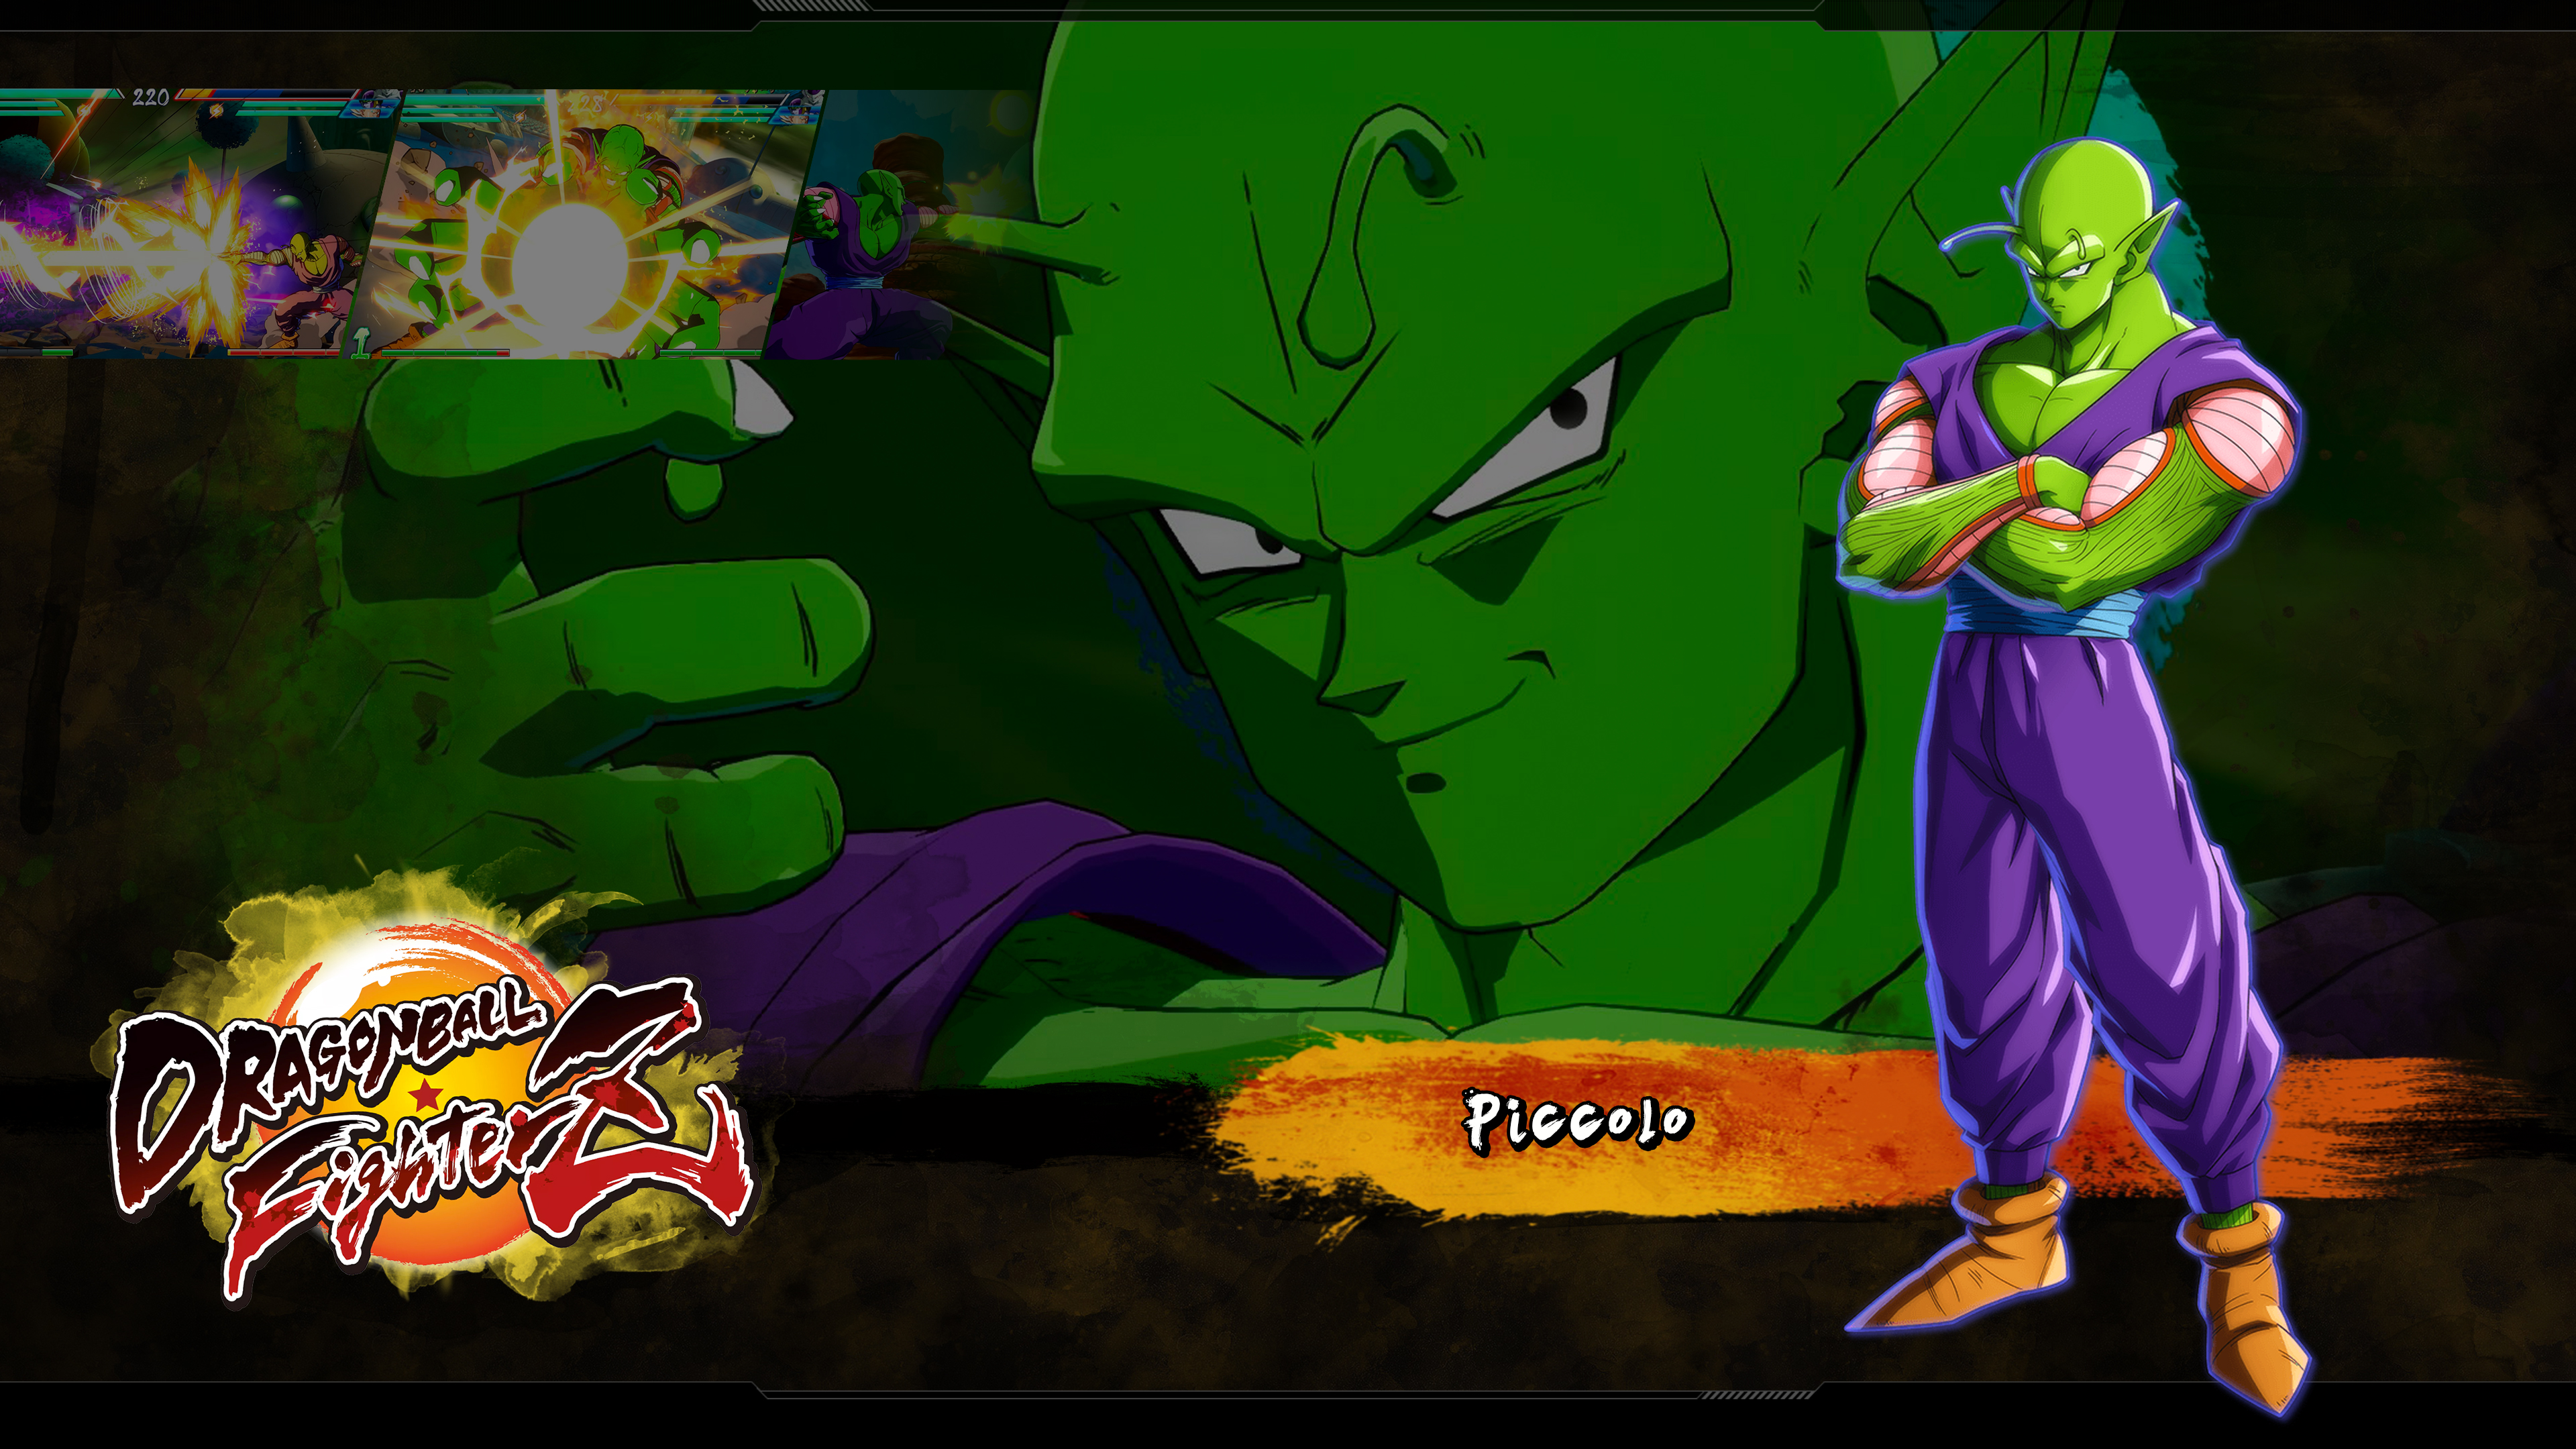 Dragon Ball Fighterz Piccolo Wallpapers Cat With Monocle